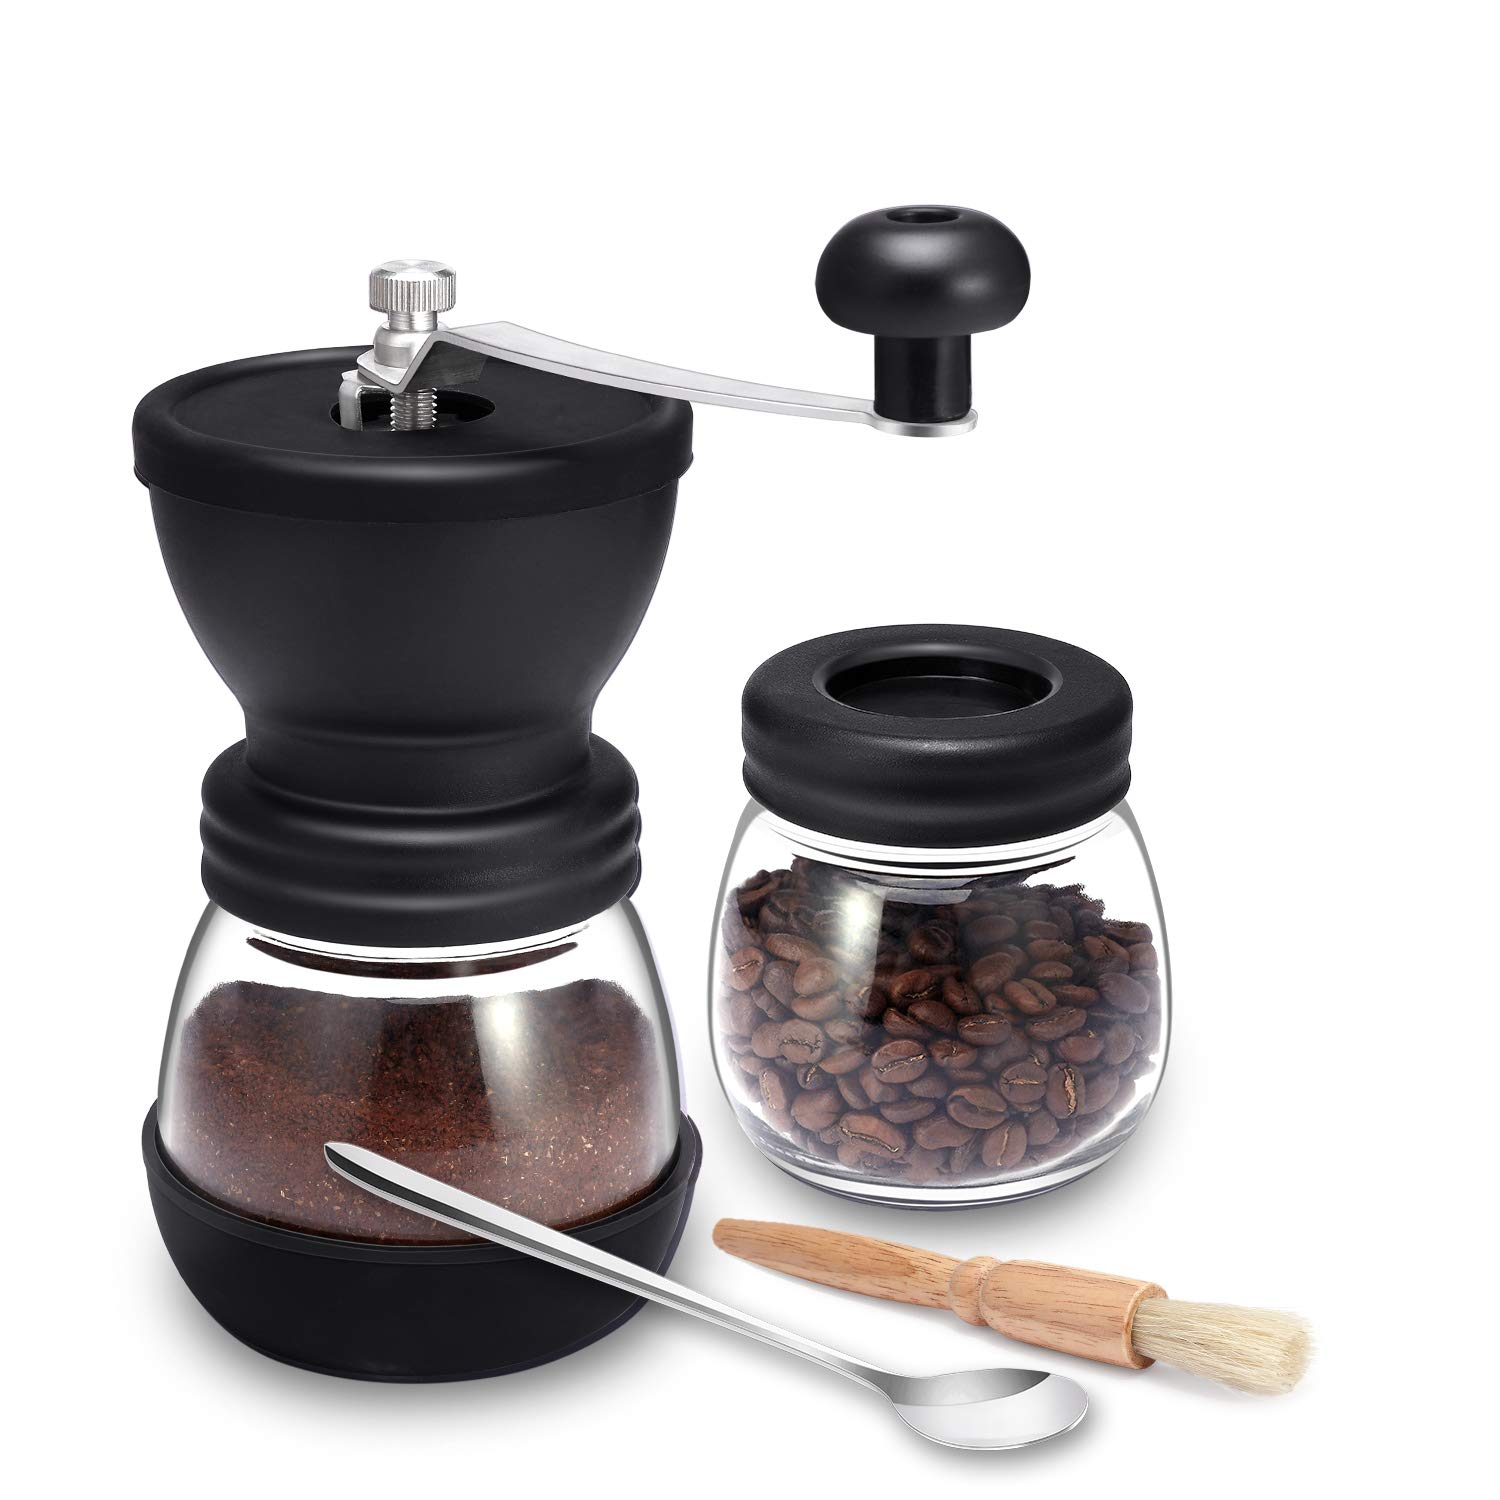 Manual Coffee Mill Grinder with Ceramic Burrs, Two Clear Glass Jars, Stainless Steel Handle and Silicon Cover